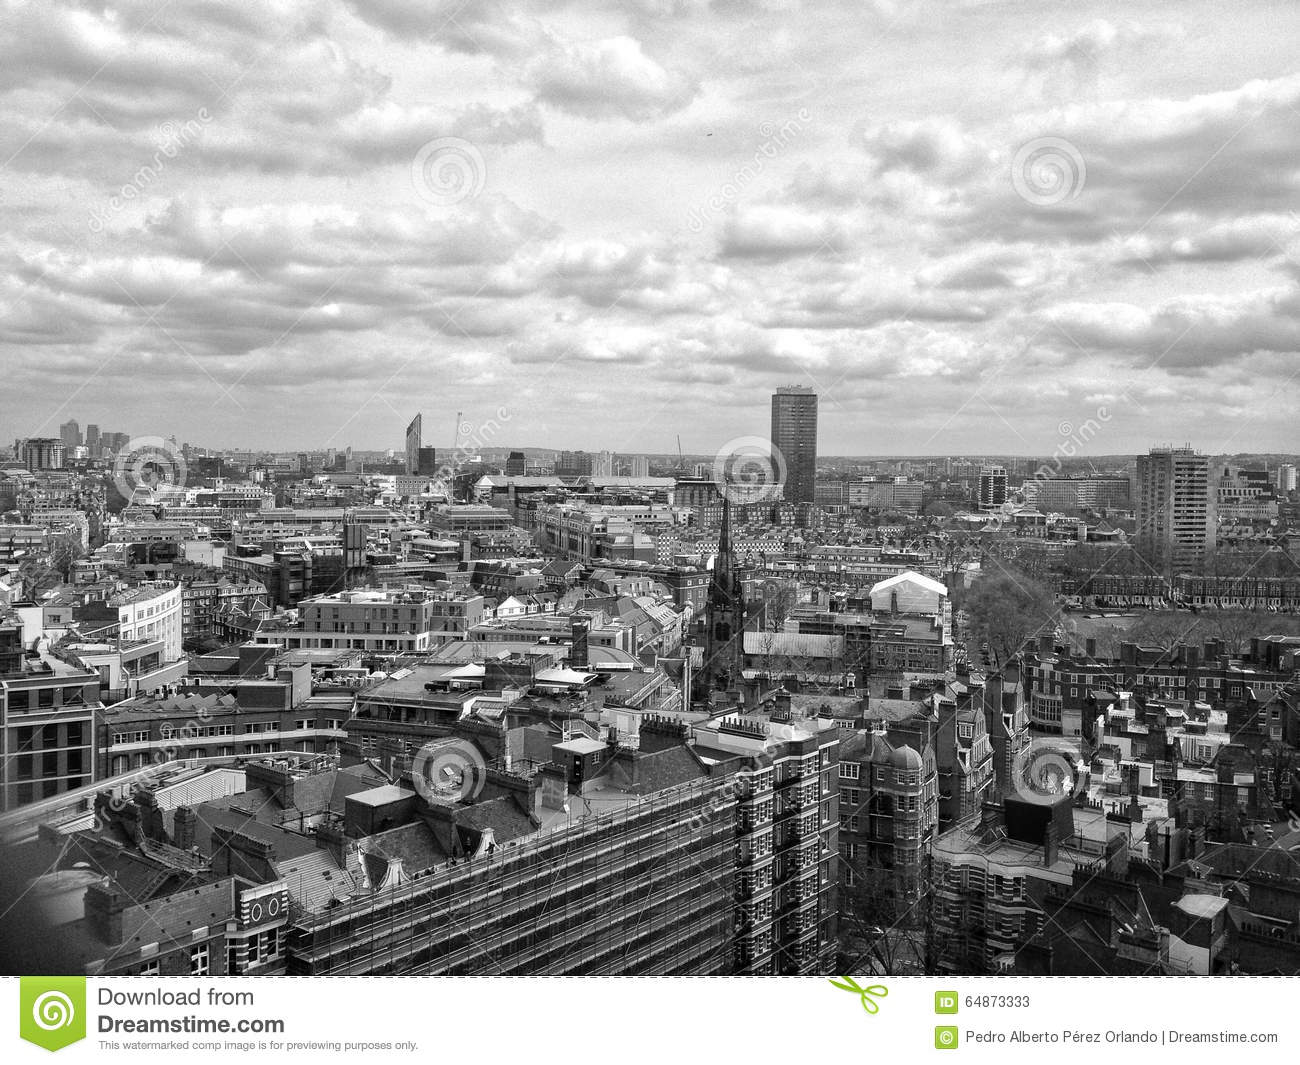 London Skyline In Black And White Stock Photo - Image ...  London Skyline Black And White